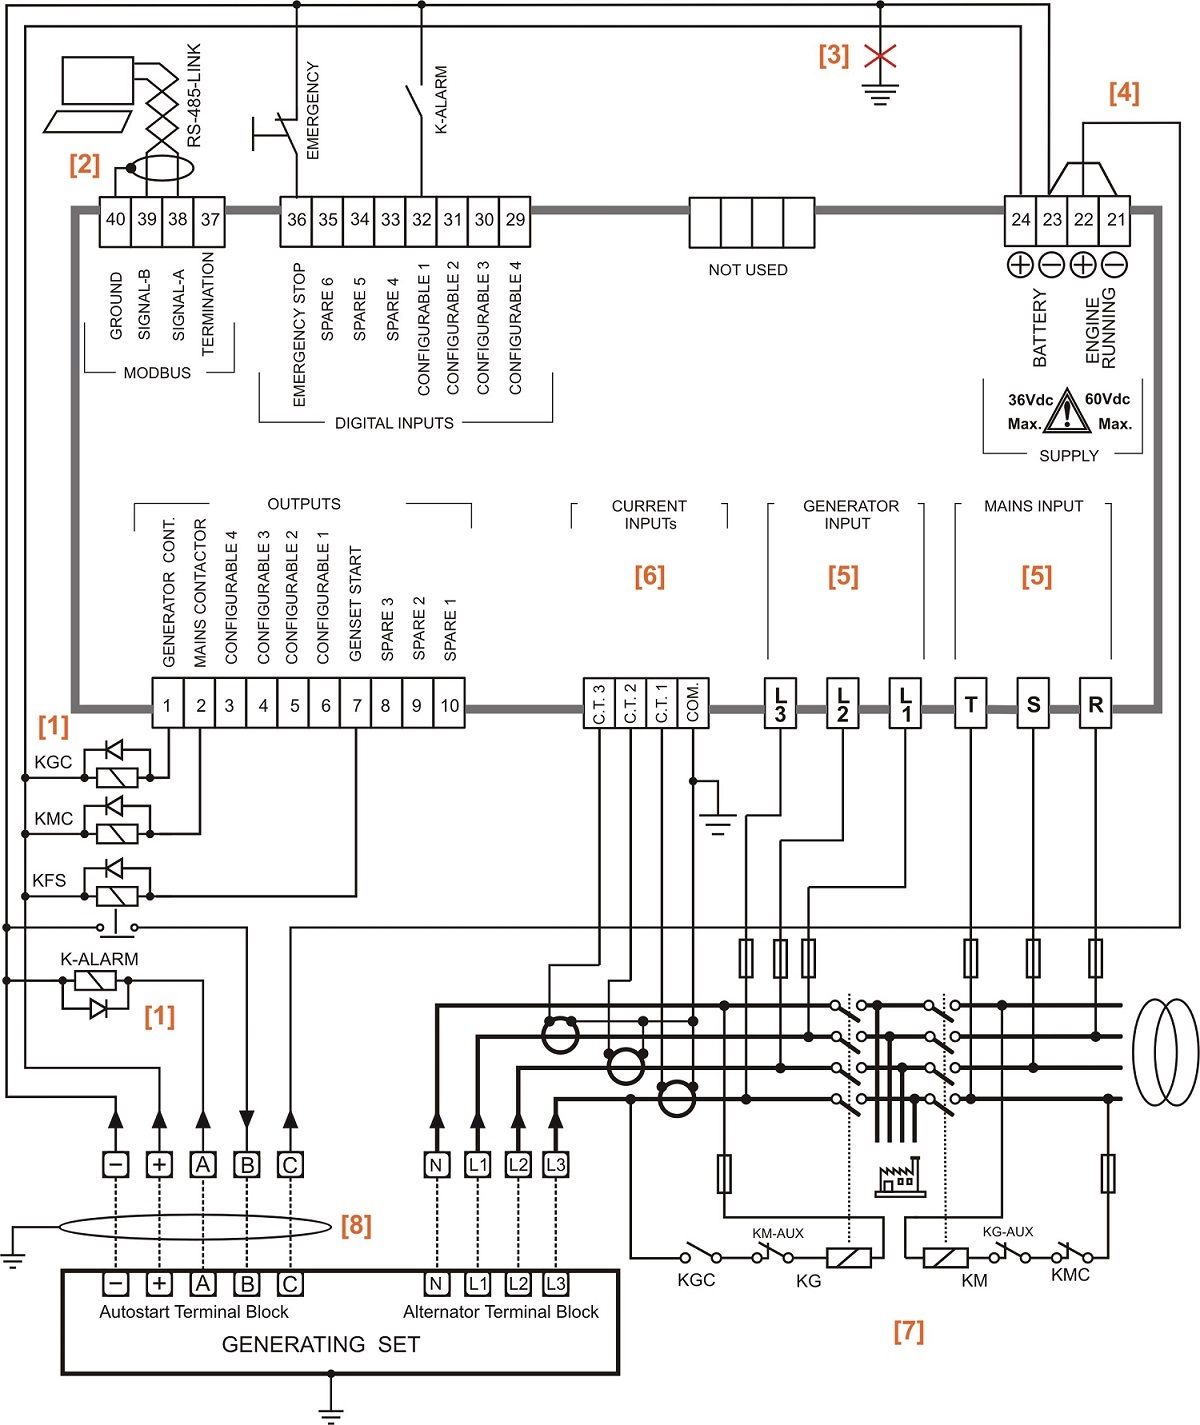 cutler hammer automatic transfer switch wiring diagram Collection-Wiring Diagram 30 Transfer Switch Air Pressor Wiring Diagram Autocad Generac Automatic Transfer Switch Wiring 17-g